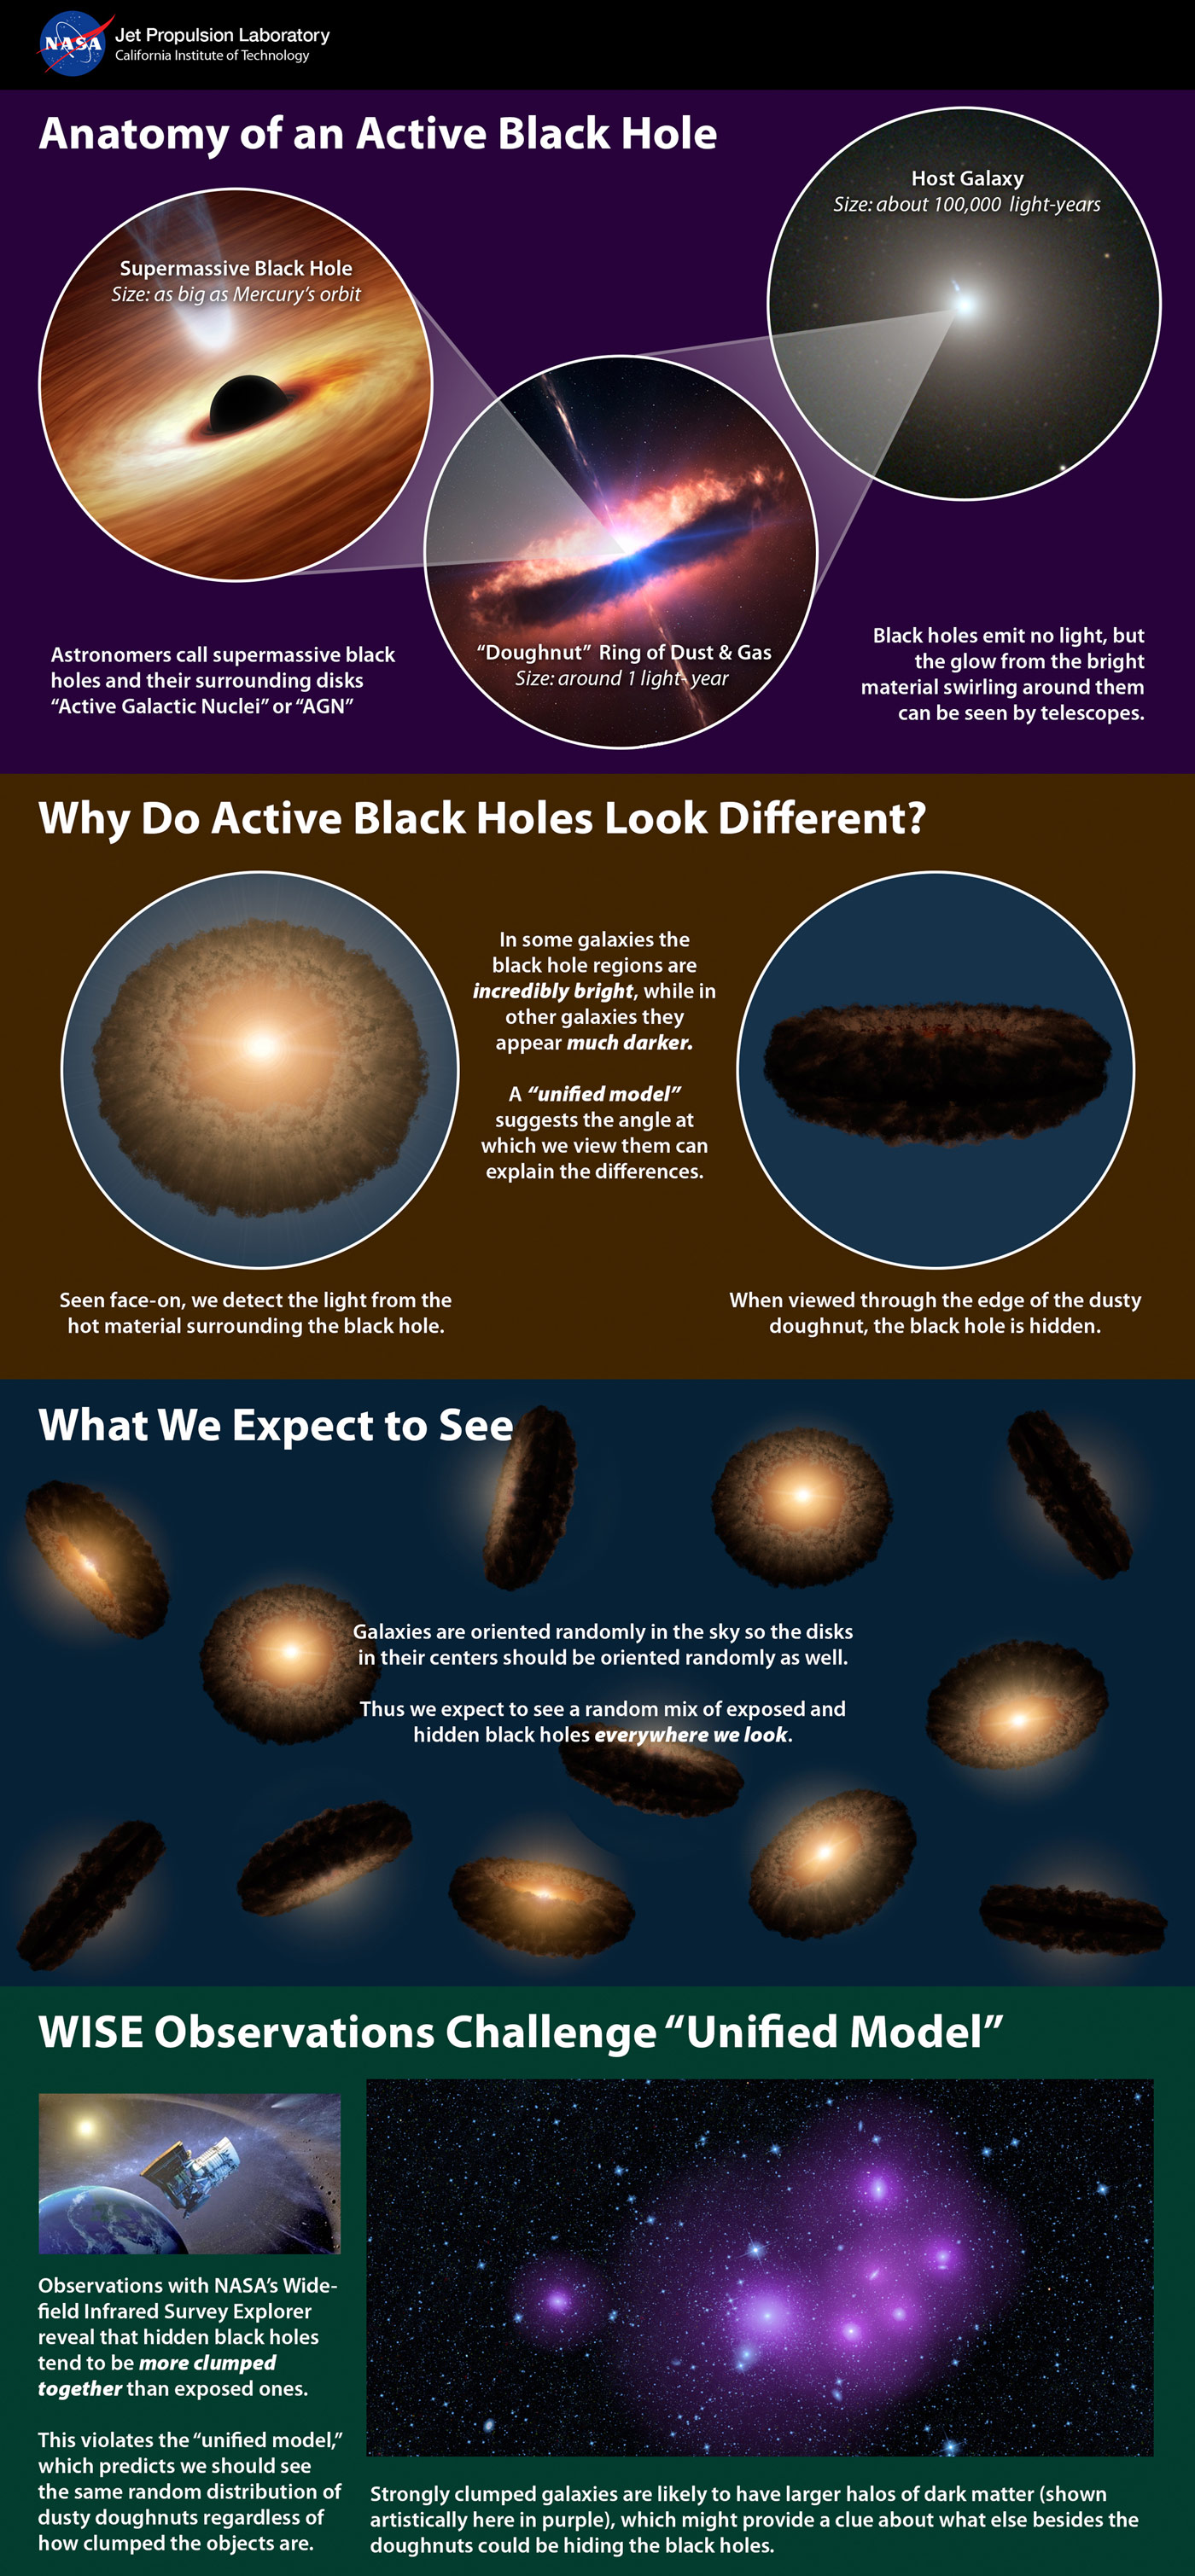 a research and understanding of the black hole So far, the event horizon telescope has provided enough details for scientists to begin developing a firm understanding of the black hole's structure much like artist's illustrations have suggested, the research team has concluded that the event horizon is most likely a ring-like structure.